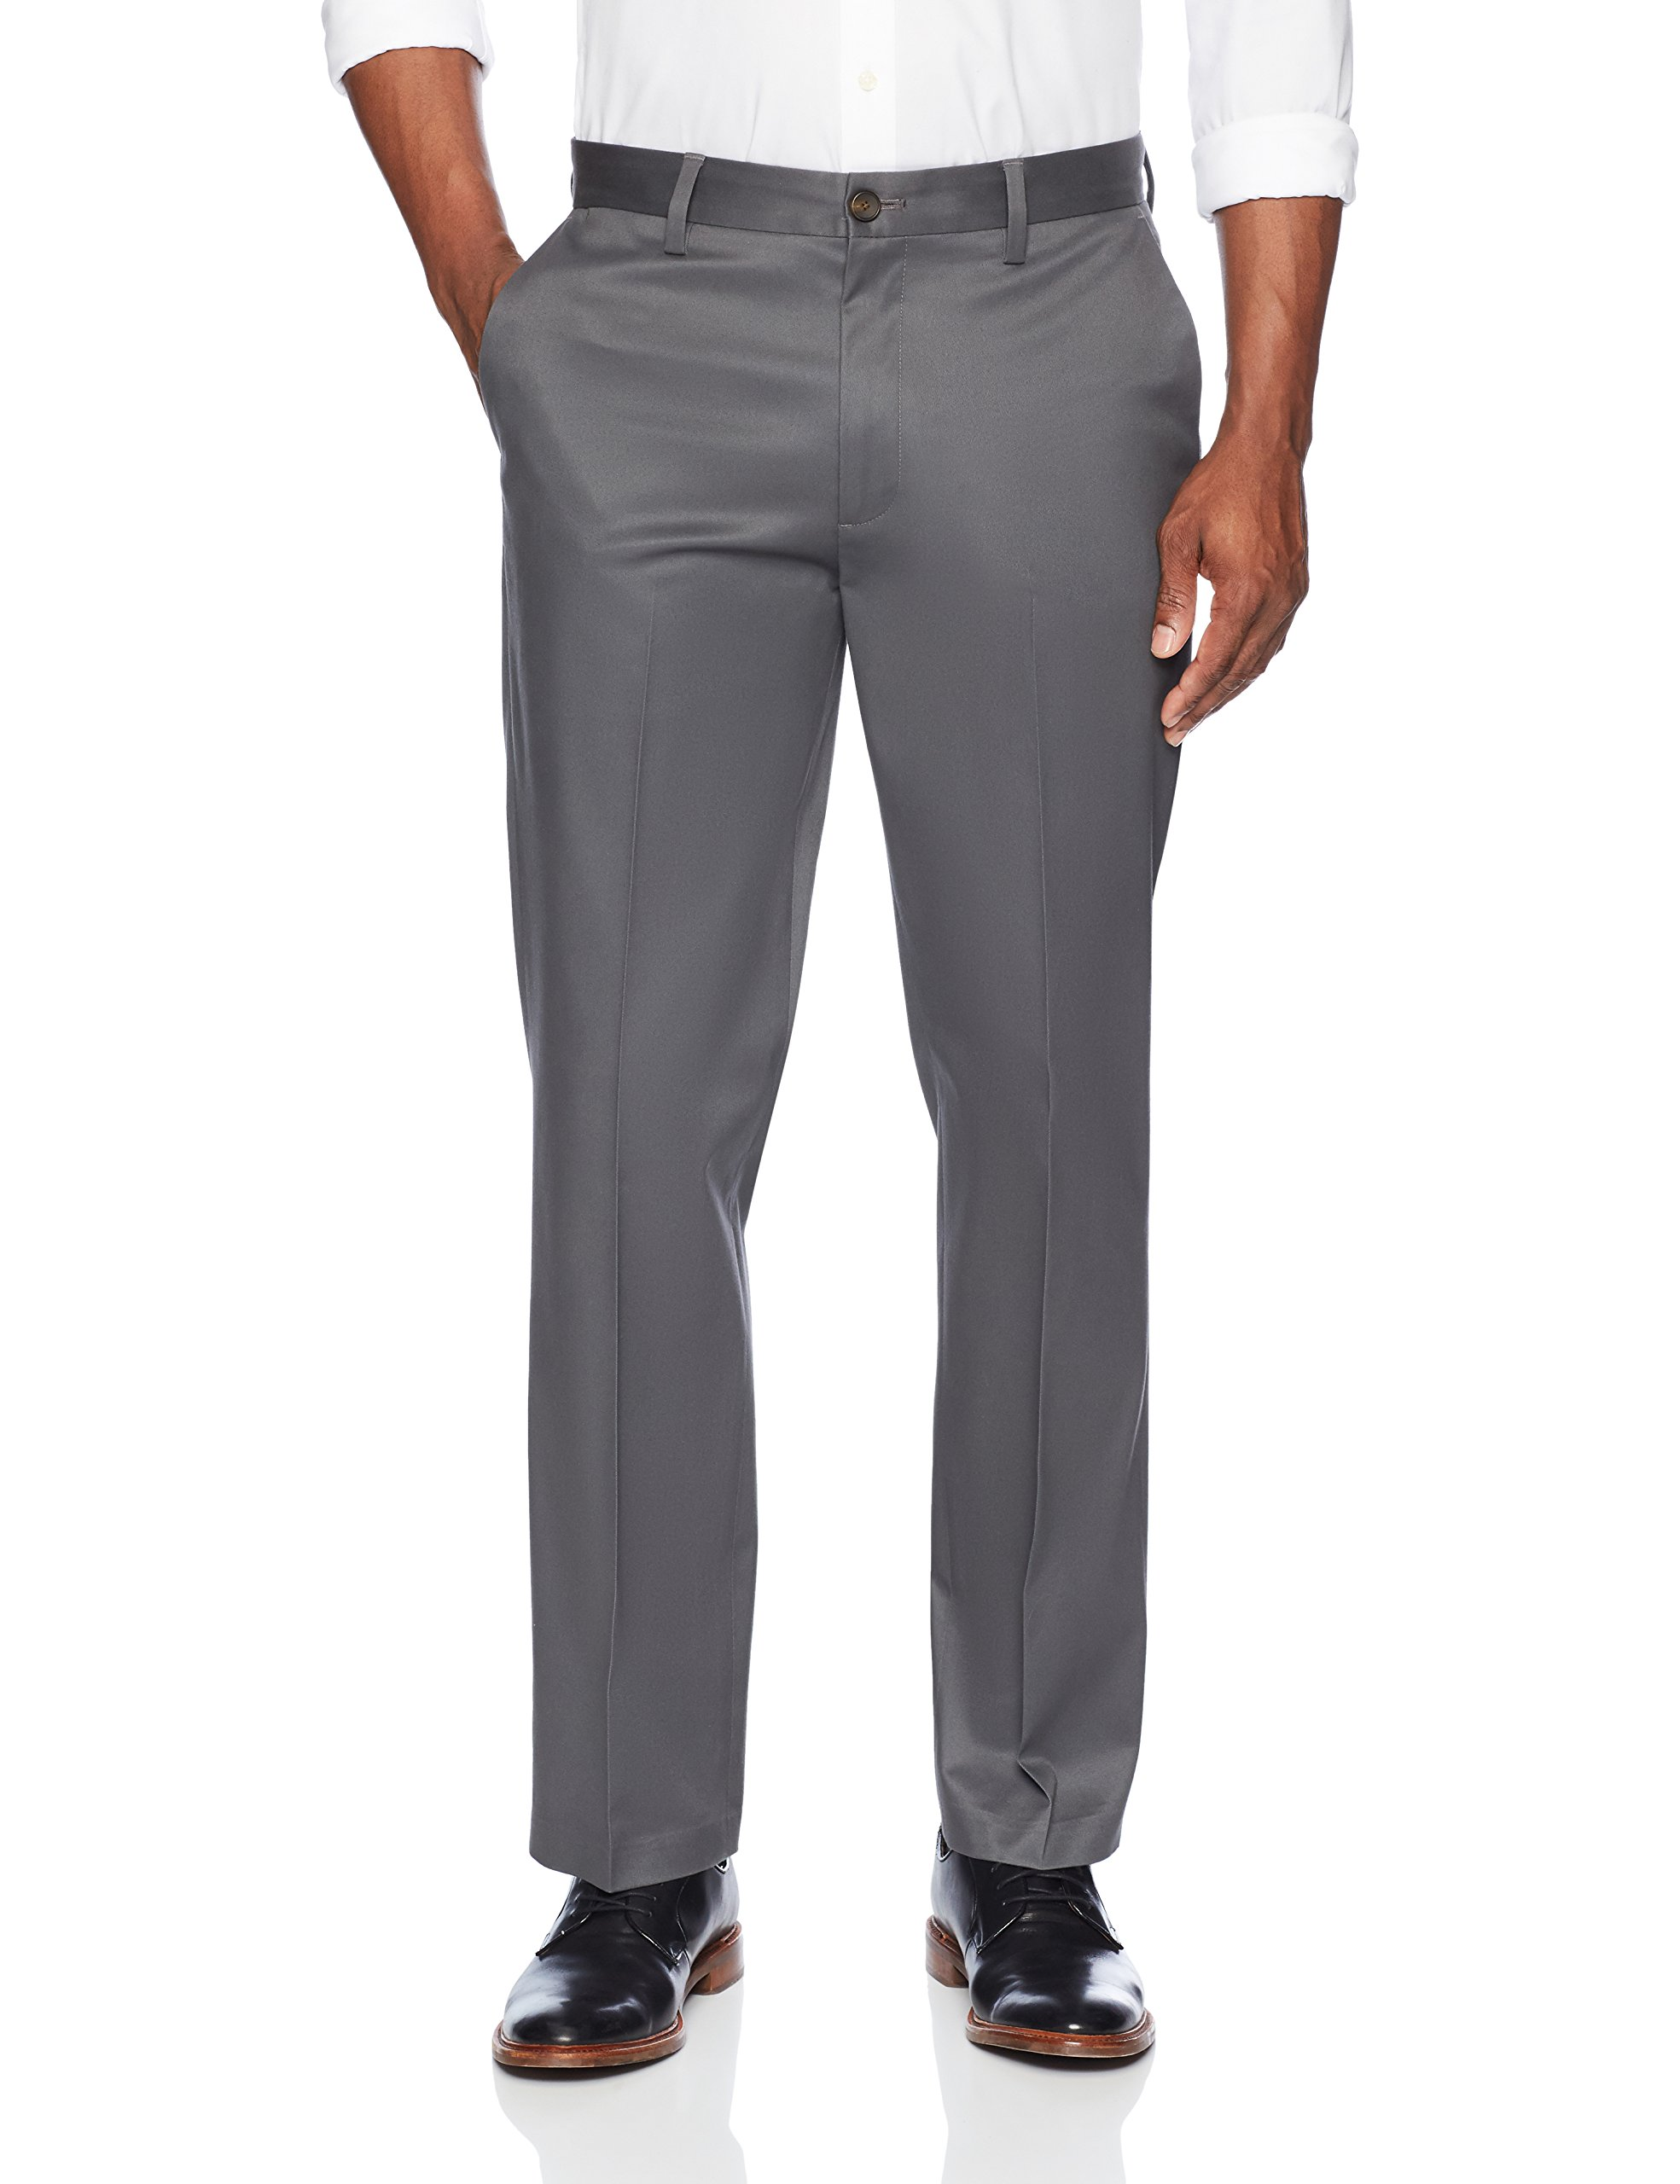 Buttoned Down Men's Relaxed Fit Flat Front Stretch Non-Iron Dress Chino Pant, Dark Grey, 33W x 32L